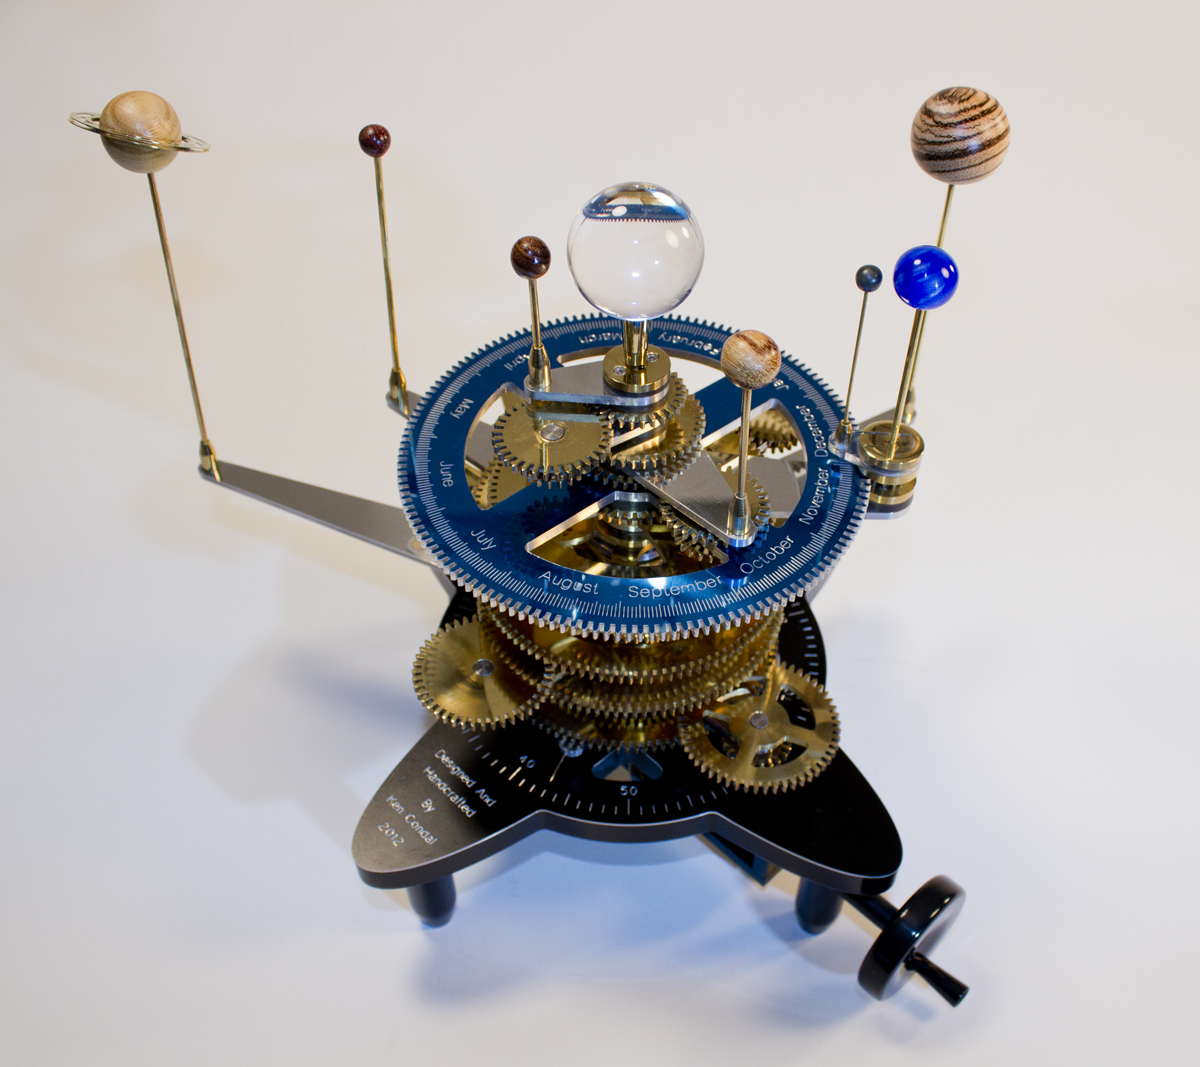 The Orrery The Regency Solar System In Miniature Via